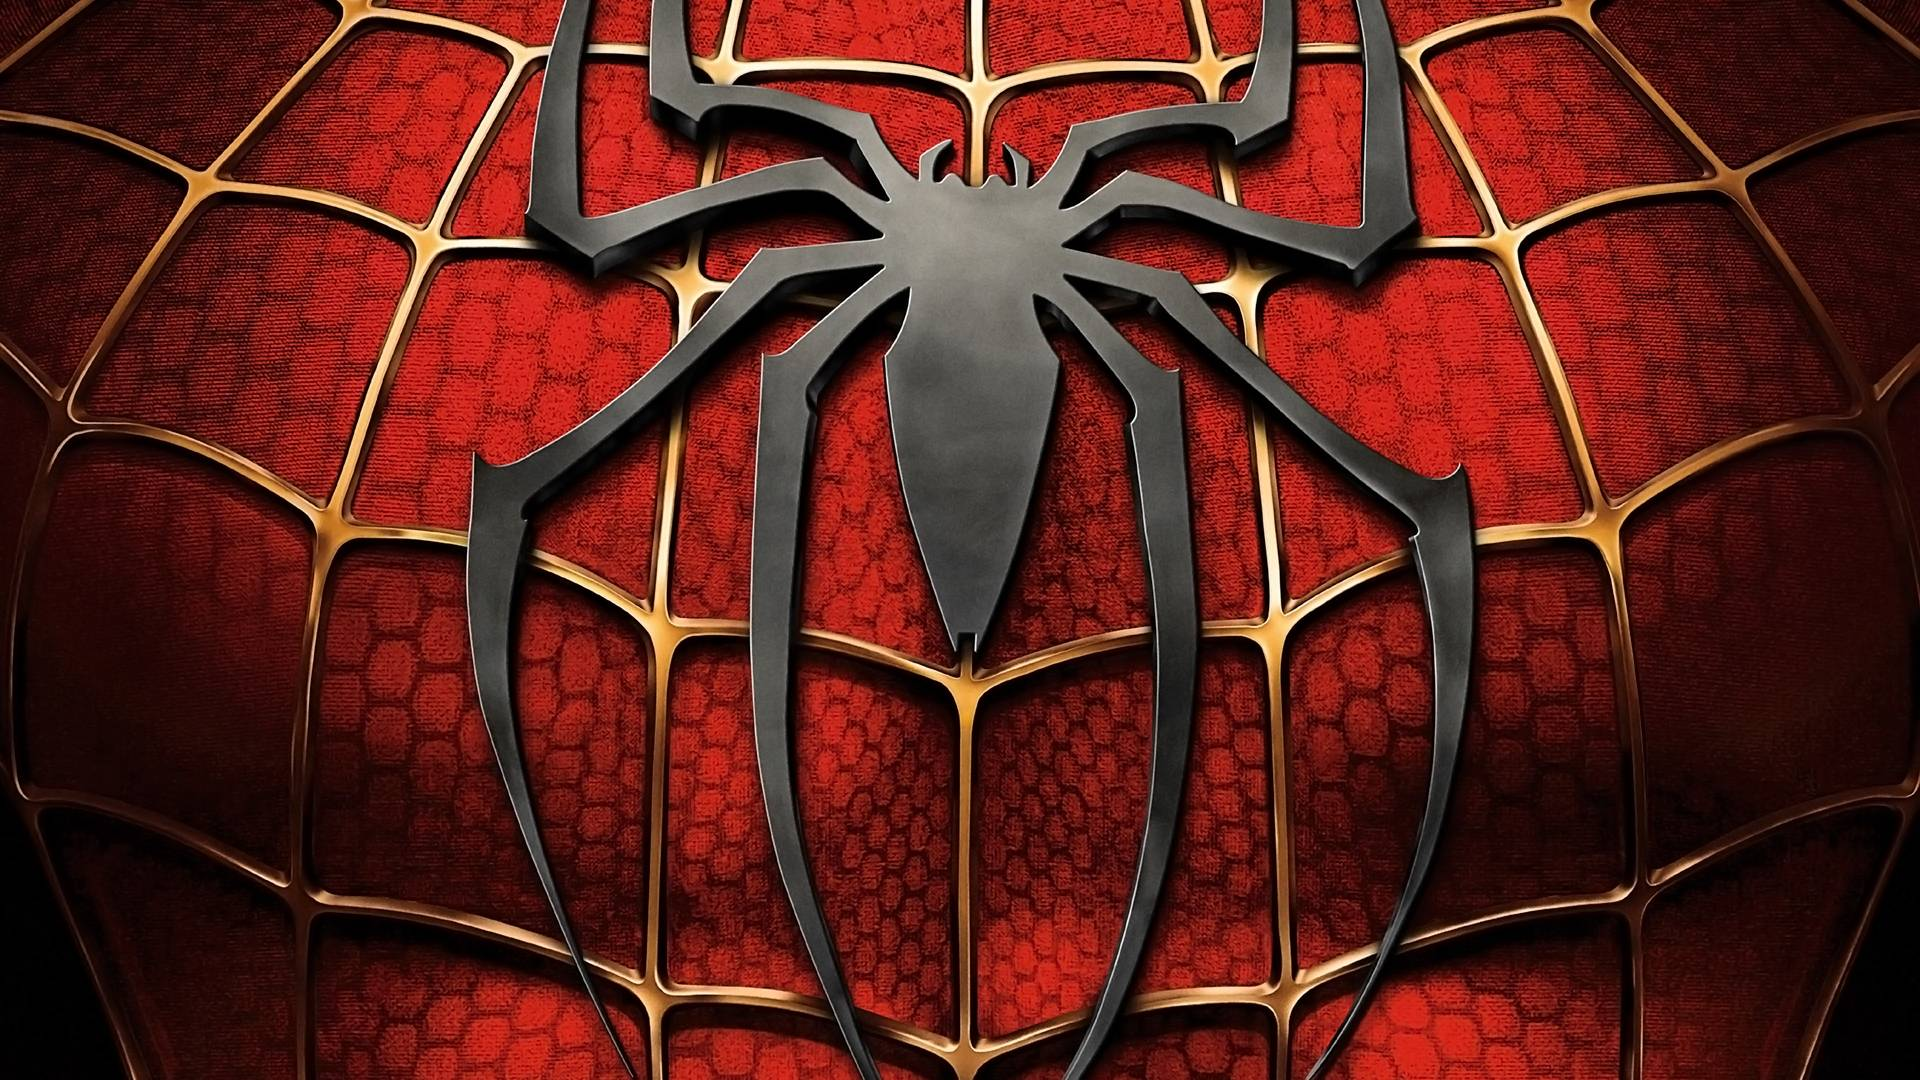 Spider Man Hd Wallpapers and Background